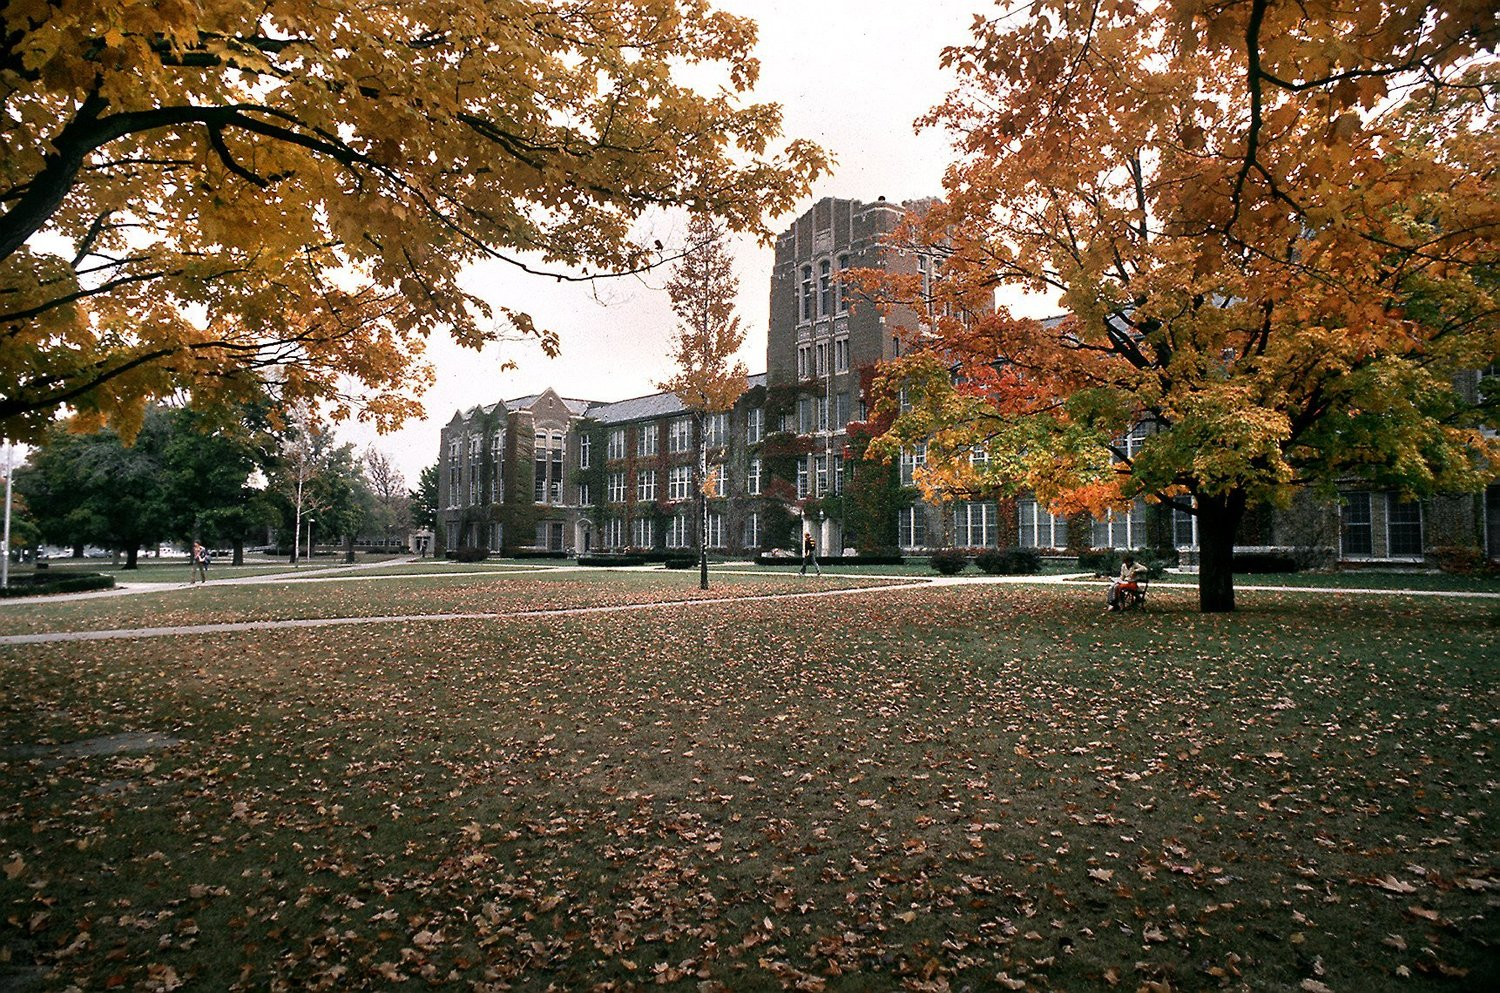 Attractive University building with colorful trees and spacious campus